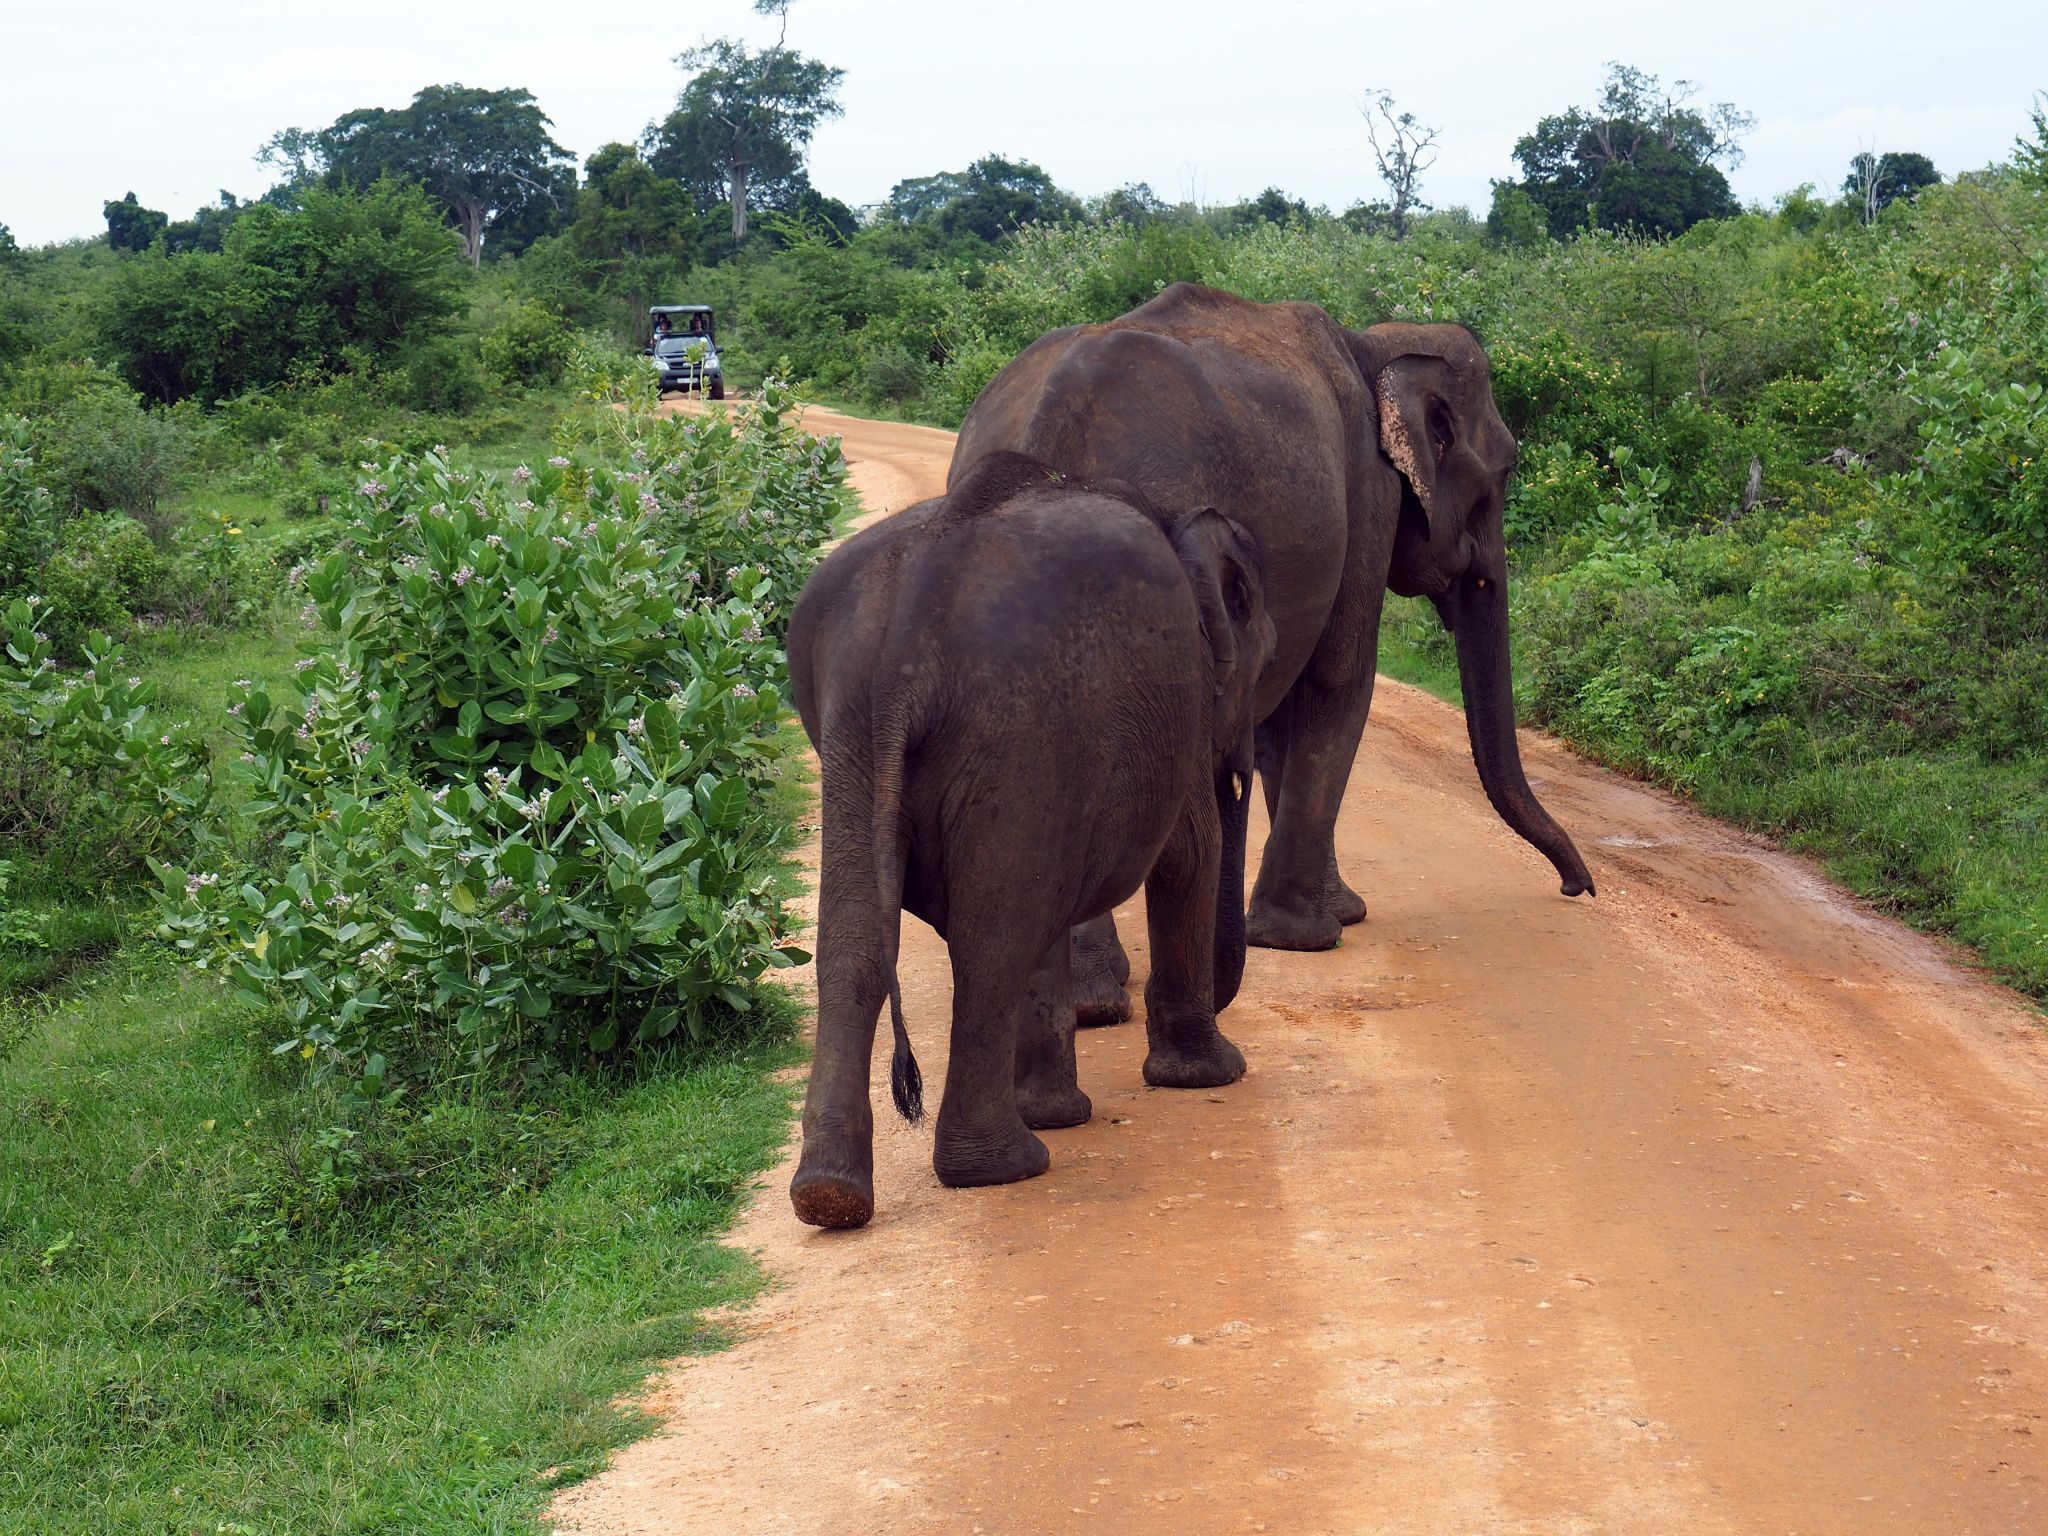 Elephants walking down road Udawalwe National Park